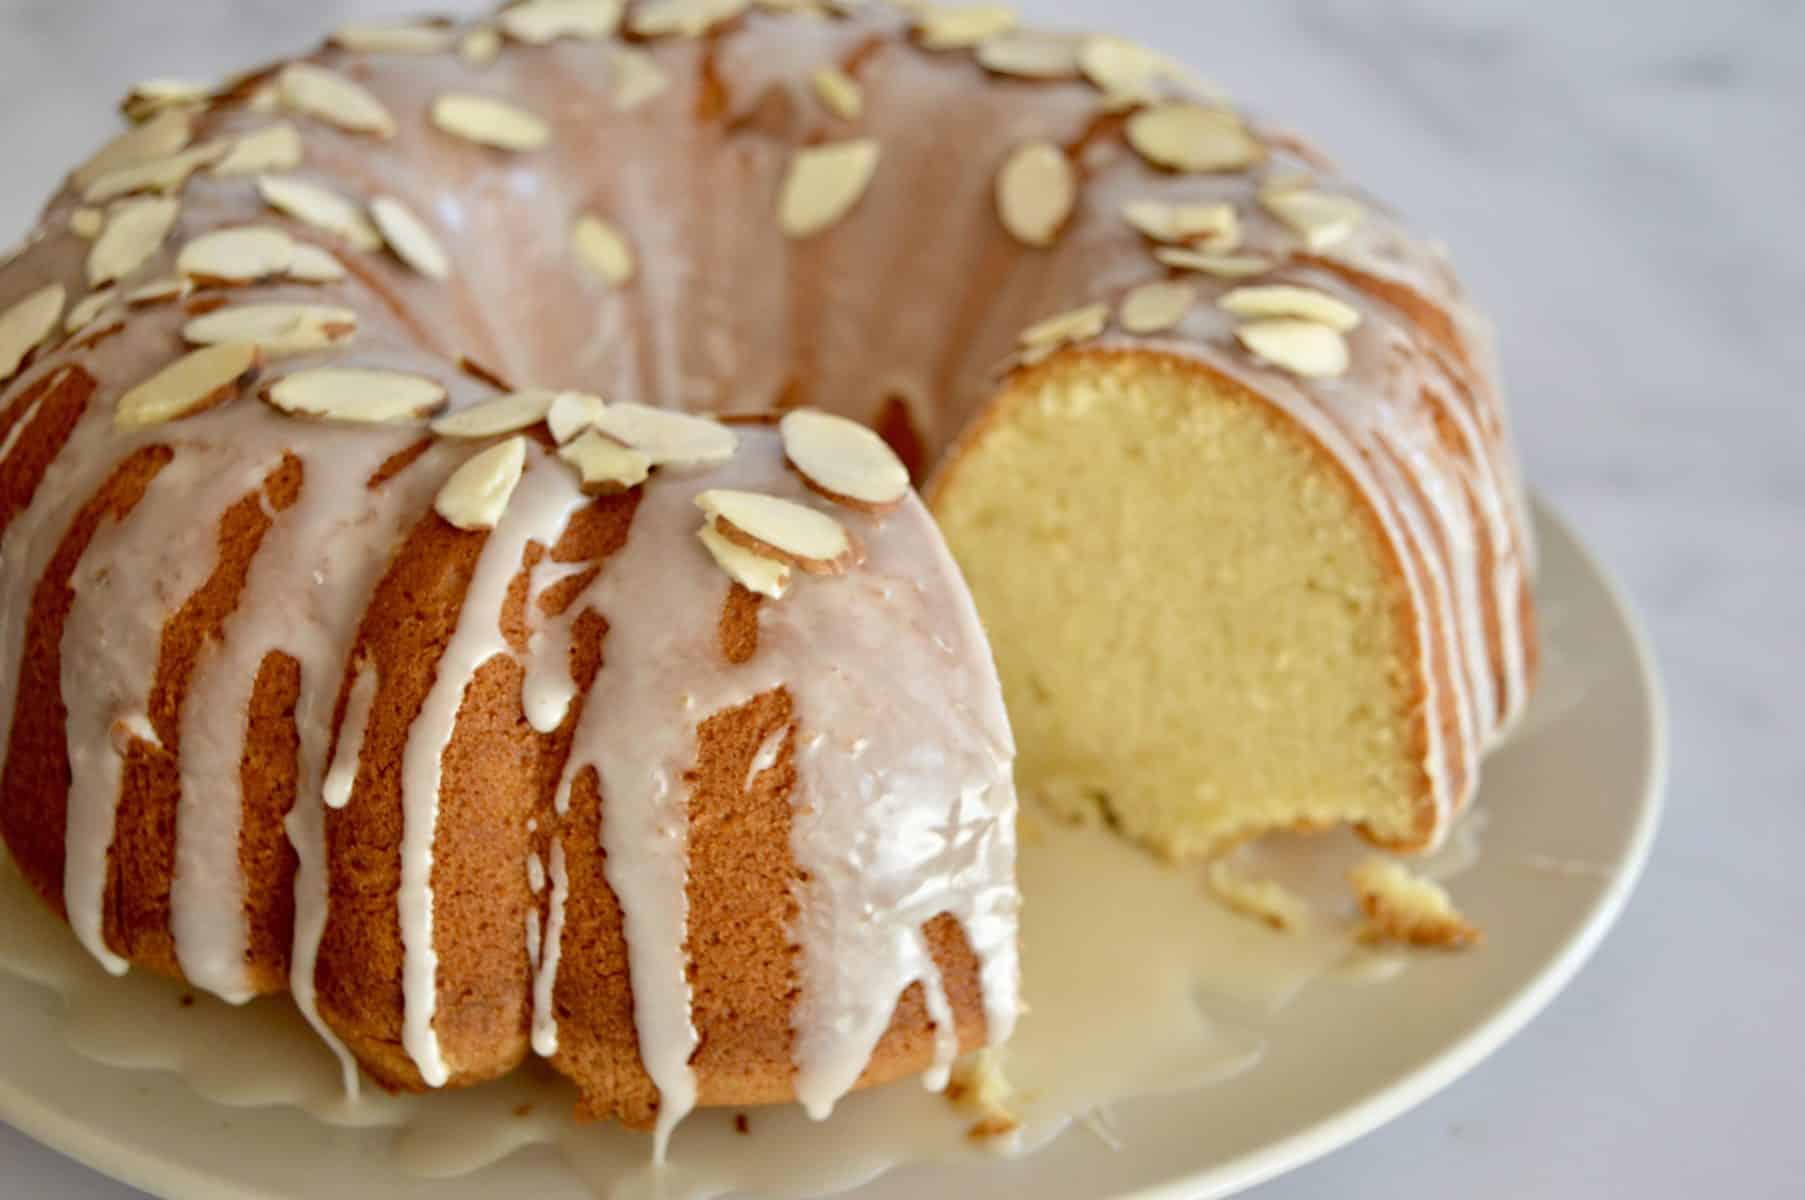 frosted bundt cake with almonds on top.